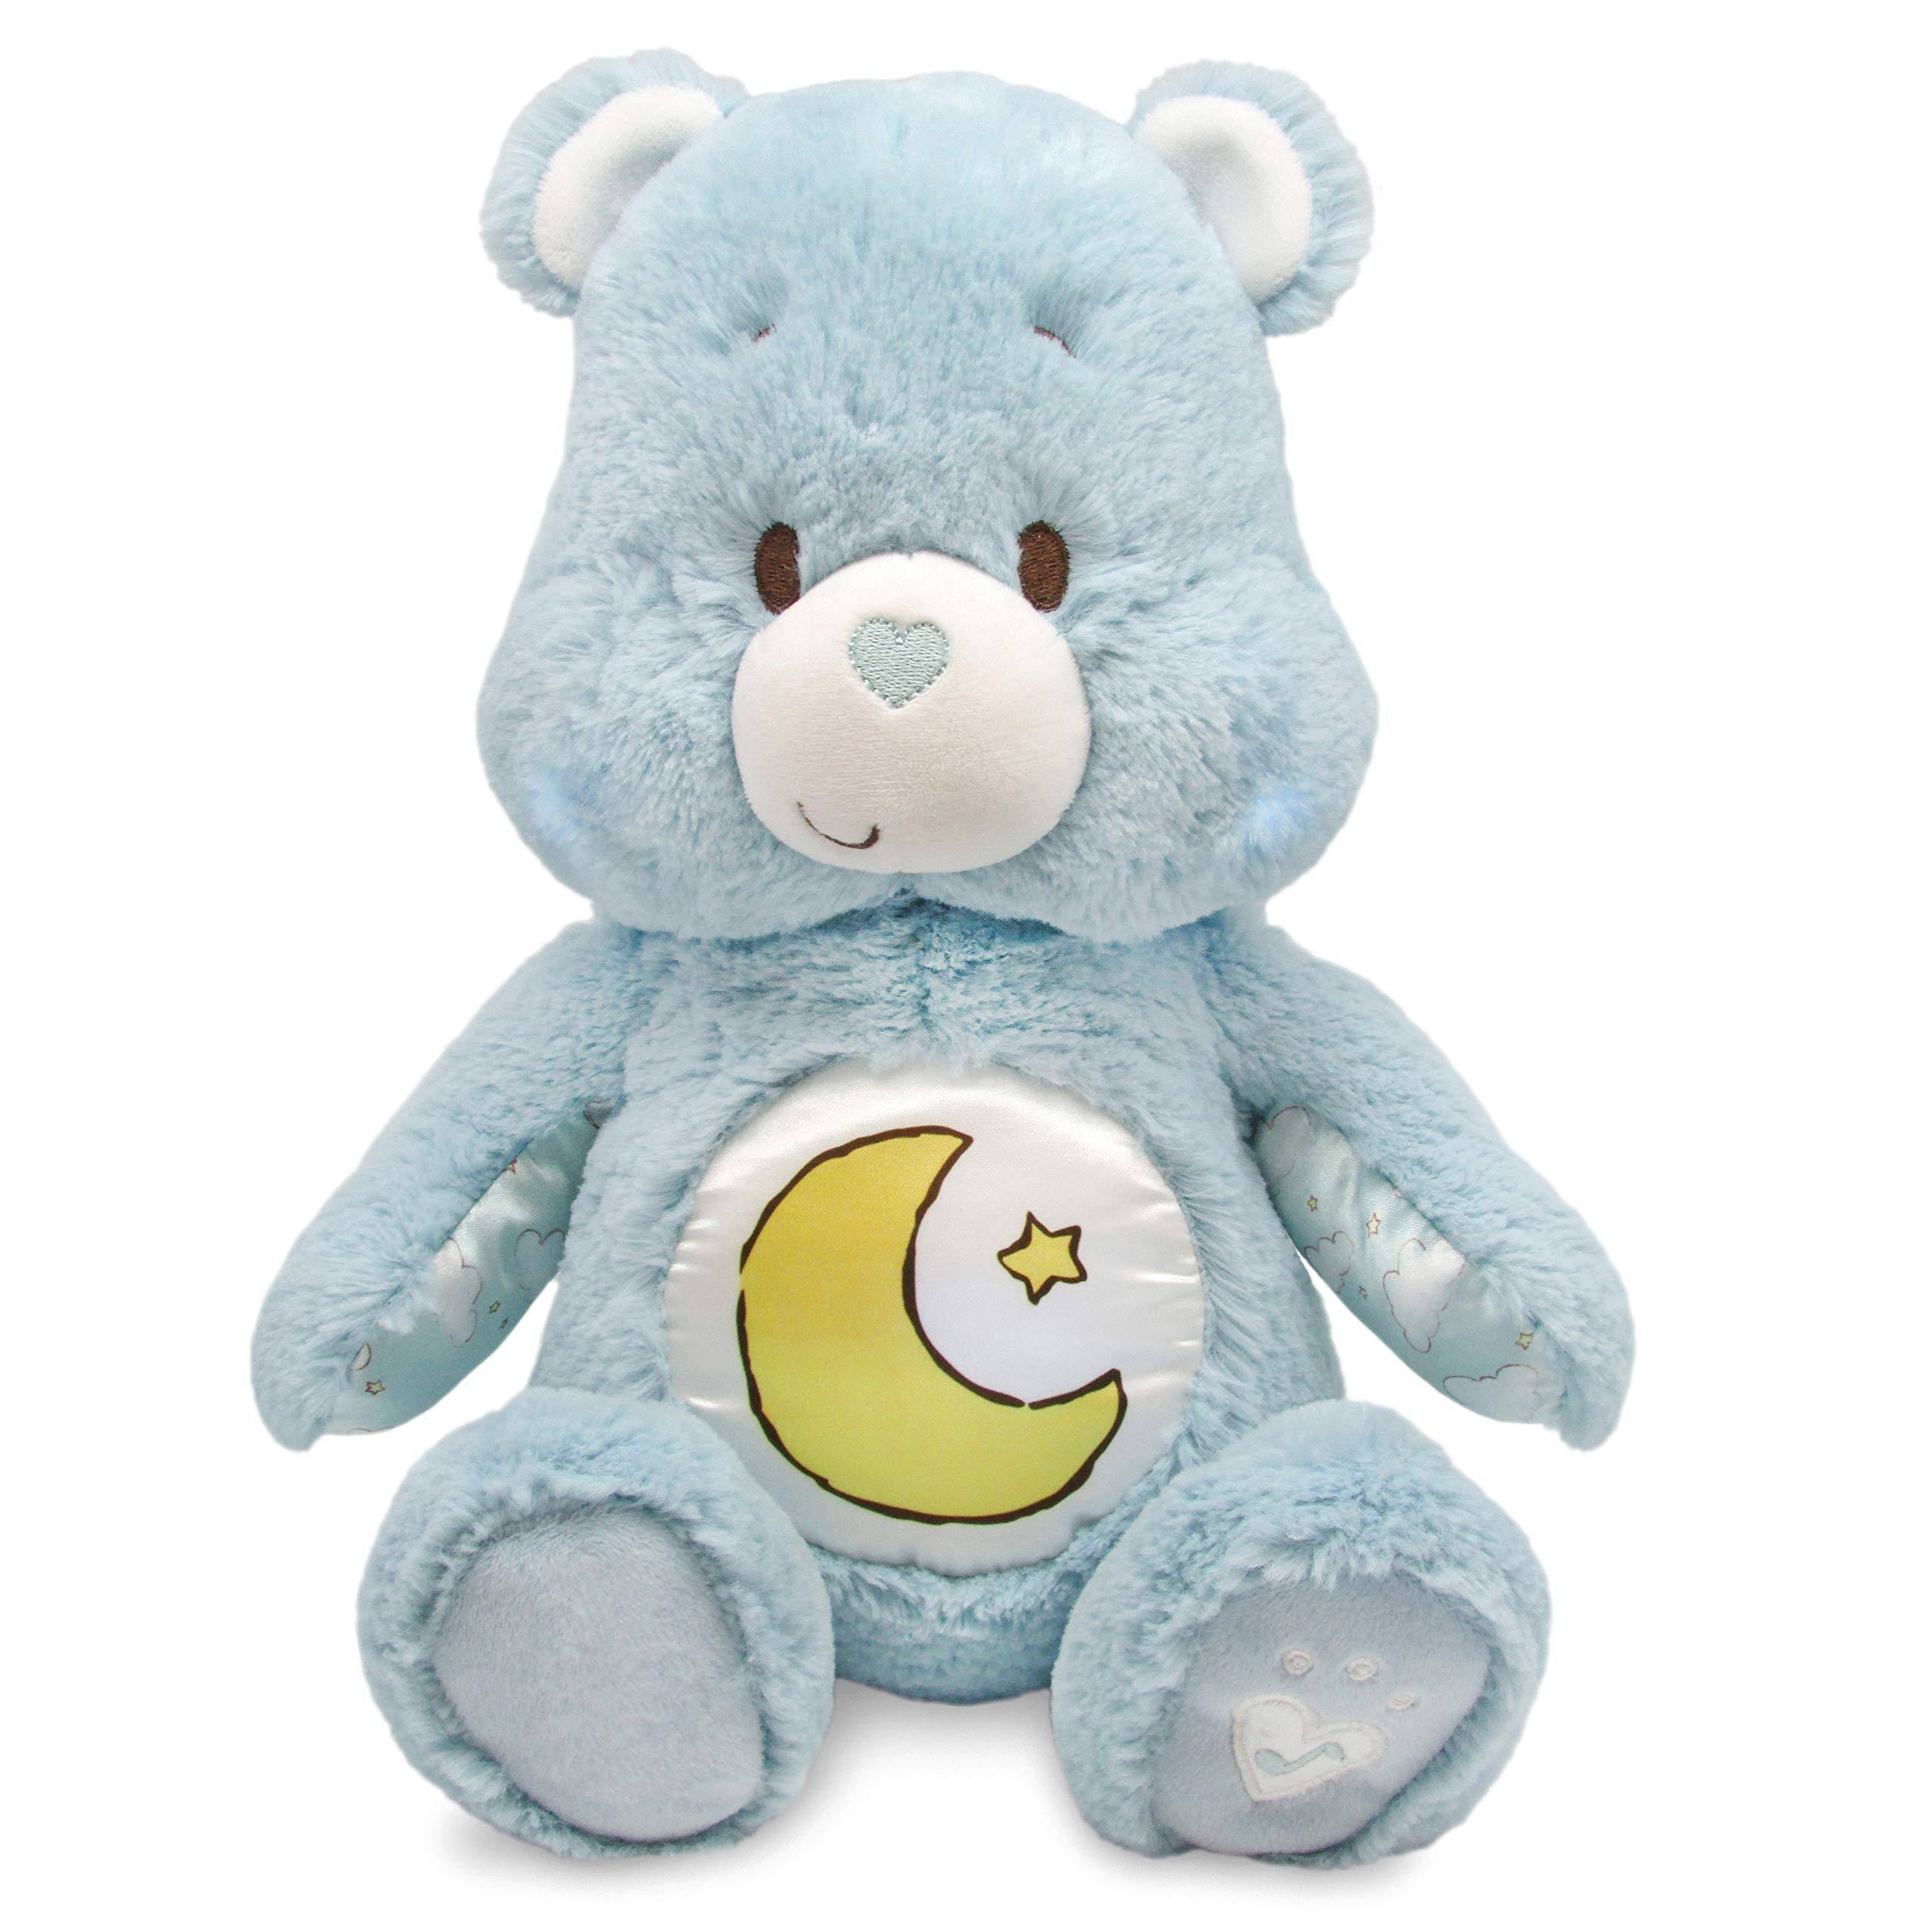 Kids Preffered Care Bears Soother Bear Stuffed Animal Plush Toy - with Music and Lights, Blue